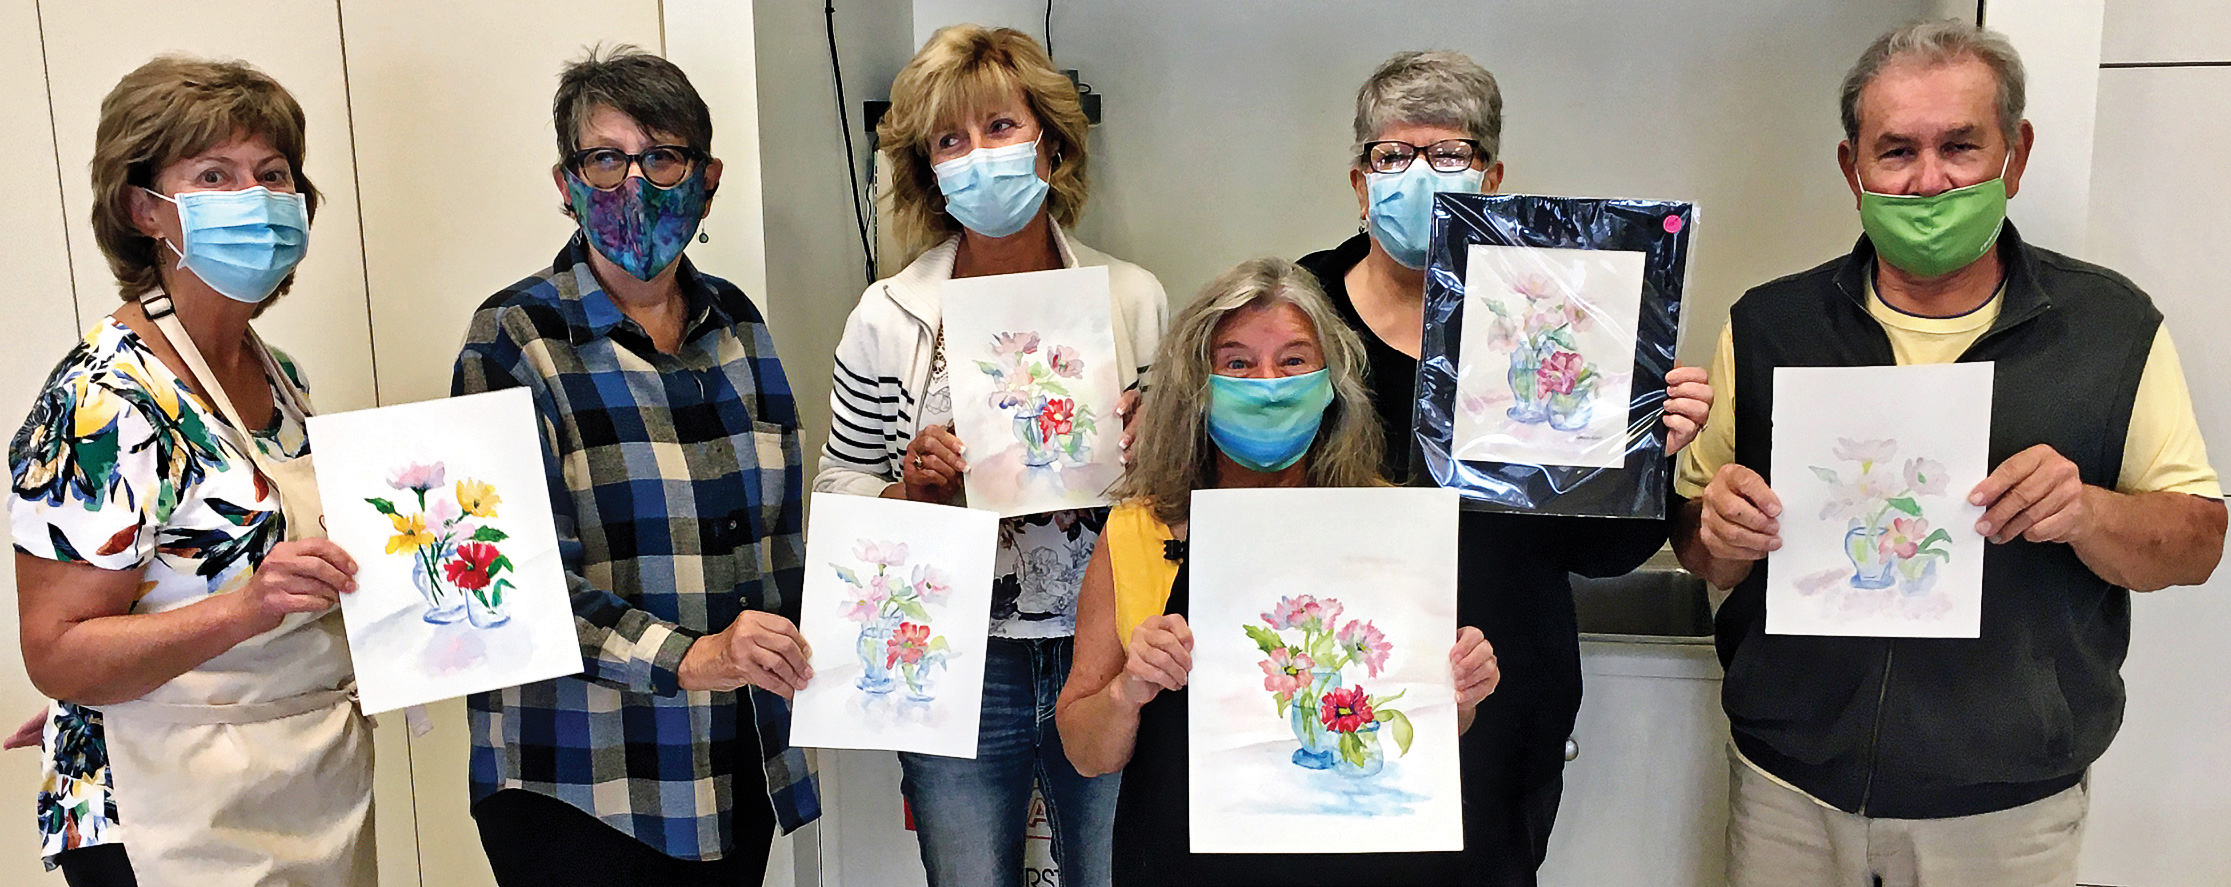 Controlling their water in watercolor painting with the help of Terry Helmstetter are (left to right): Karen Cutrell, Terry, Karen Kulling, Susan Halley, Doreen Beers, and Louie Cano.